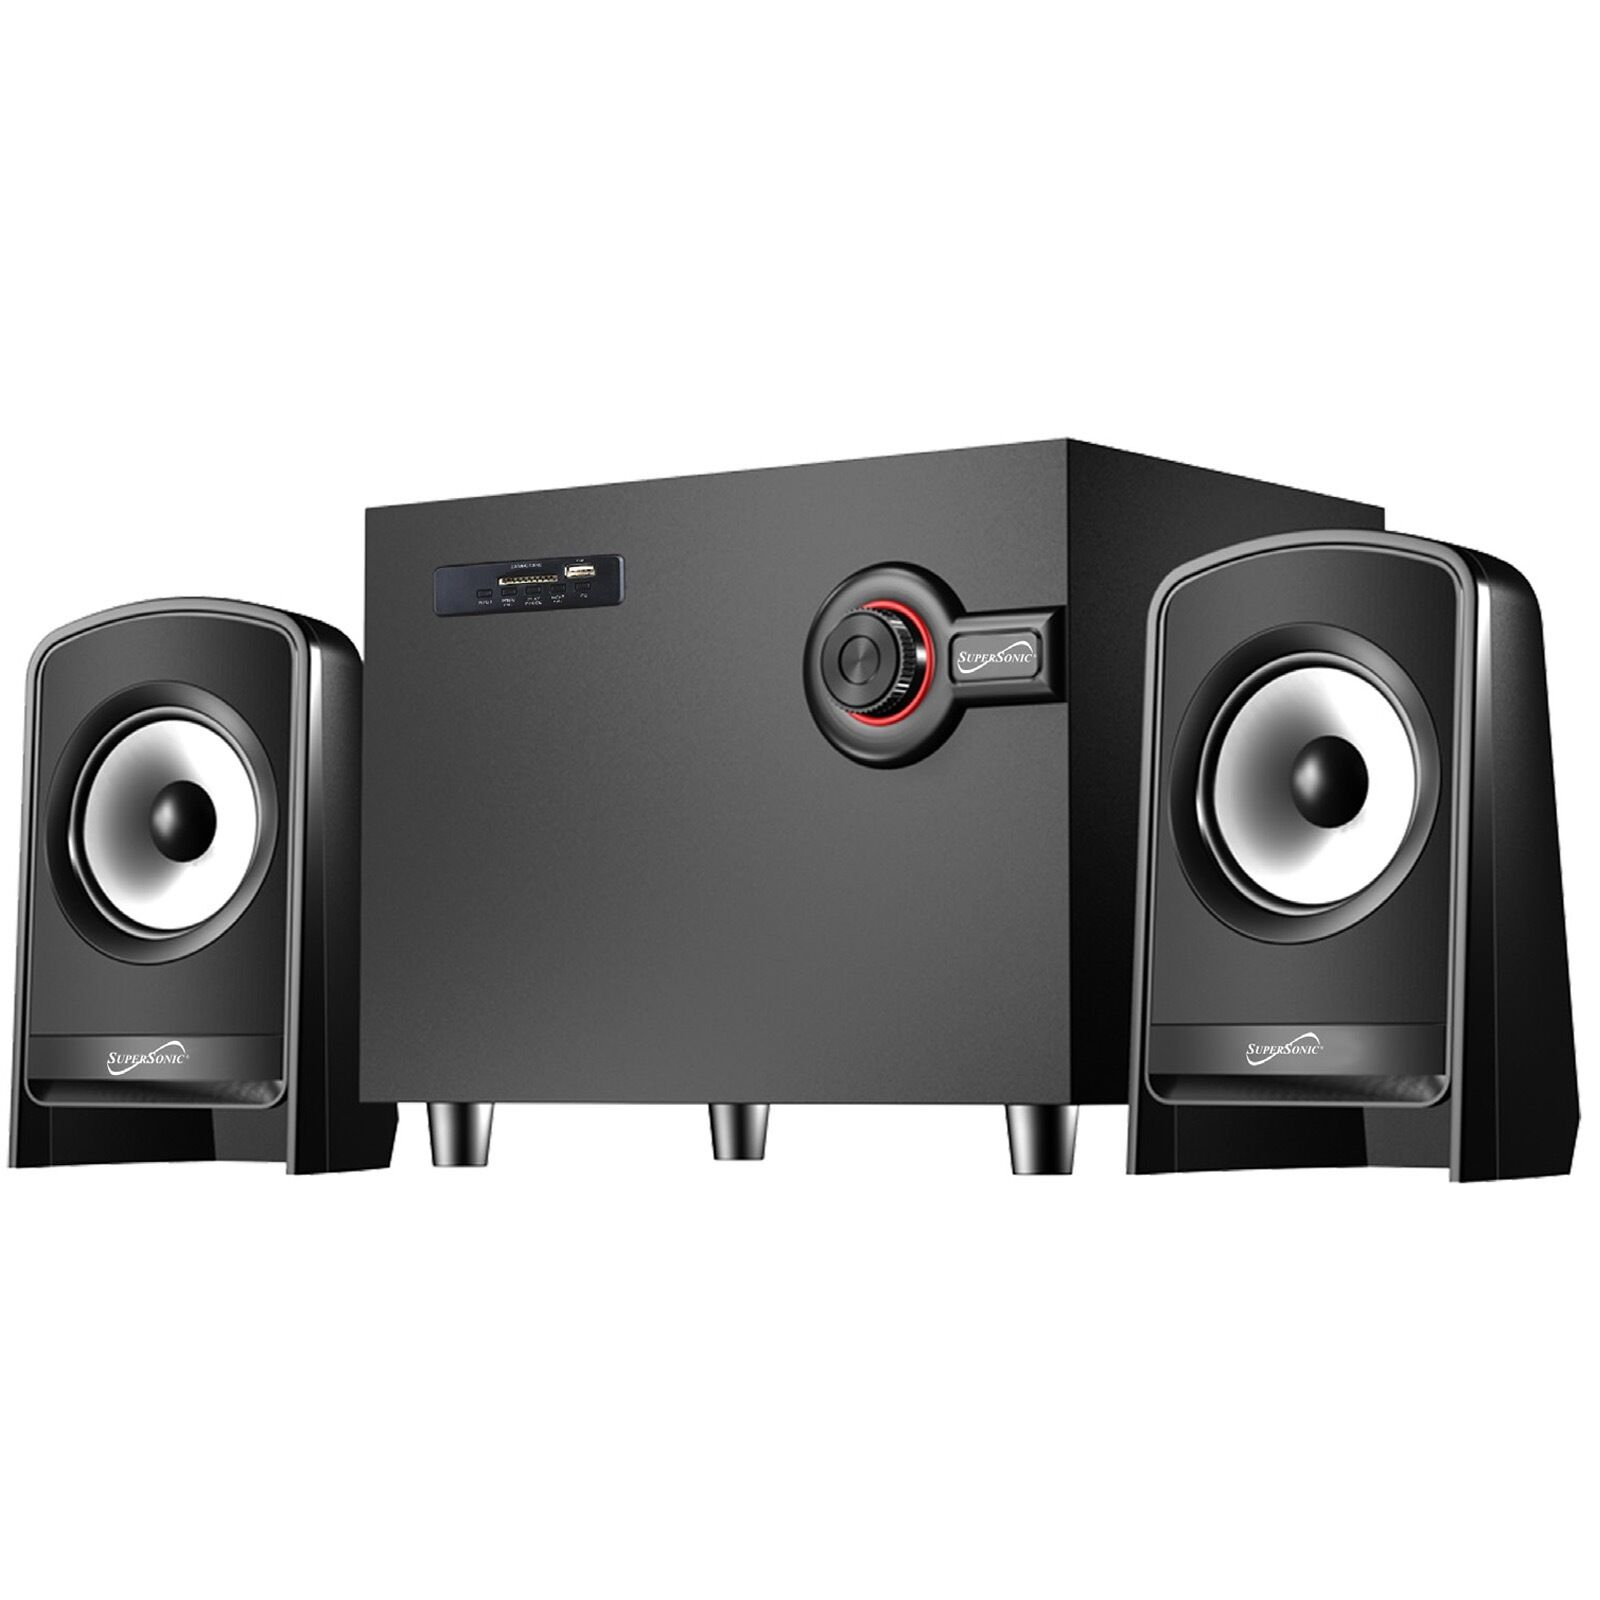 SUPERSONIC blueETOOTH MULTIMEDIA SPEAKER SYSTEM with USB SD AUX INPUT & FM RADIO